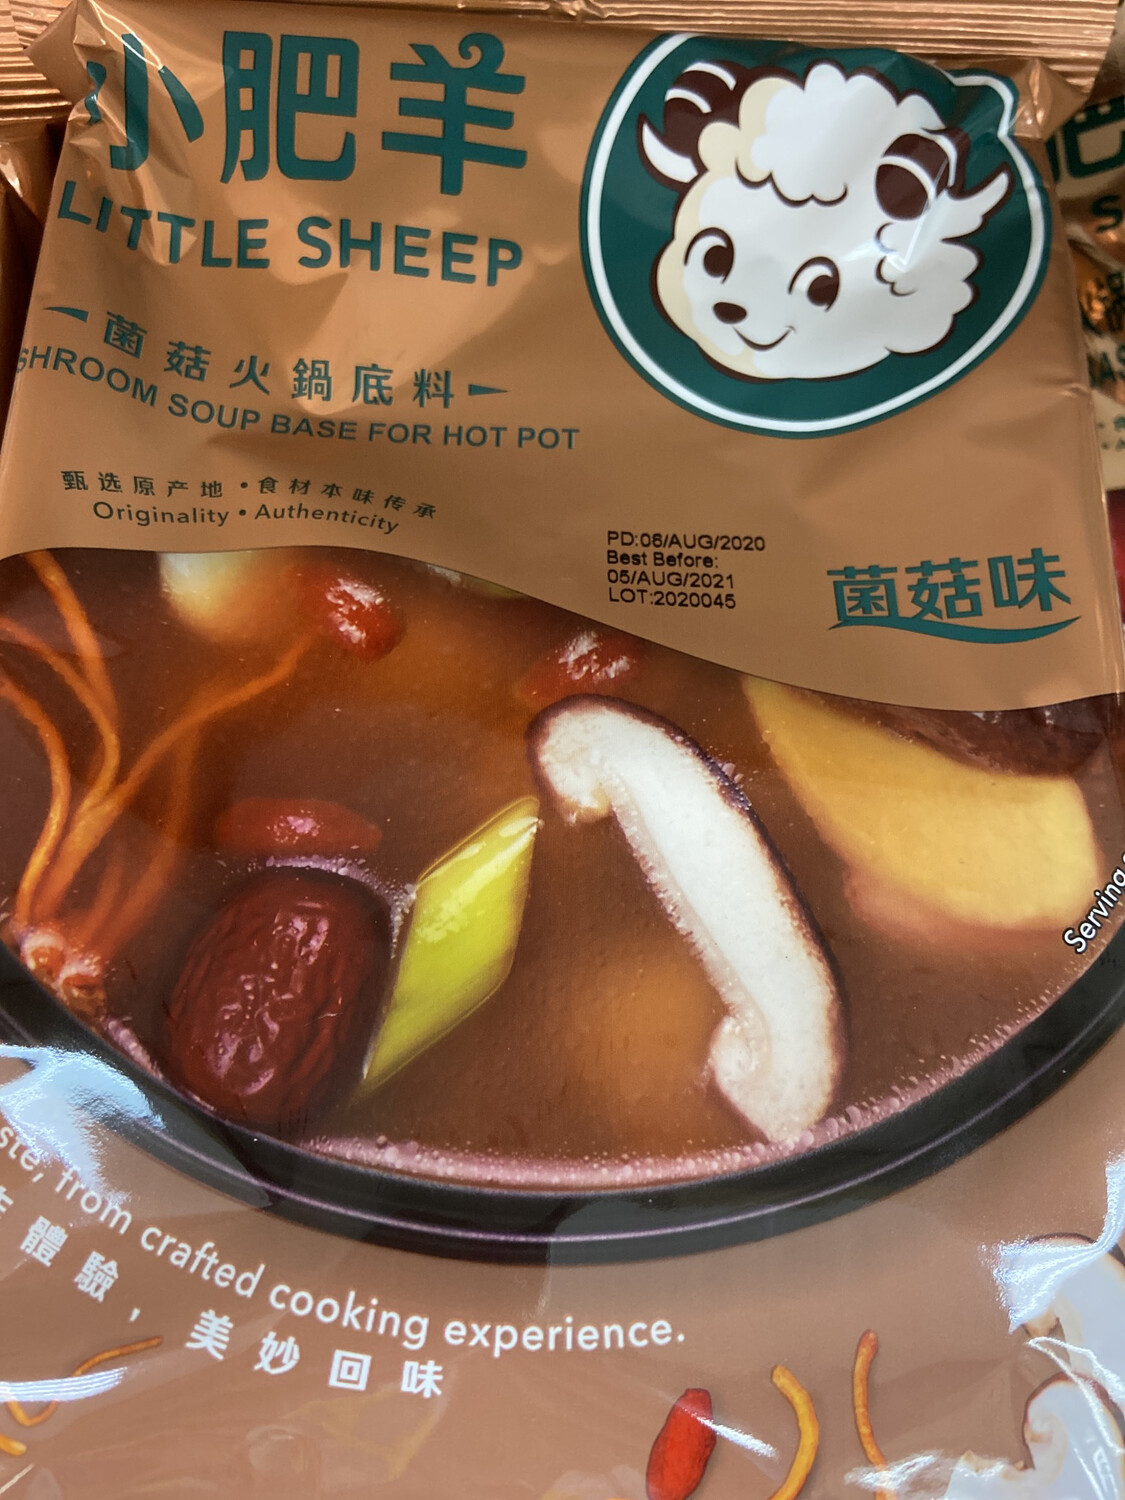 【RG】LITTLE SHEEP Hotpot Mushroom Soup Base Mala Spicy 小肥羊火锅底料 菌菇汤 235g